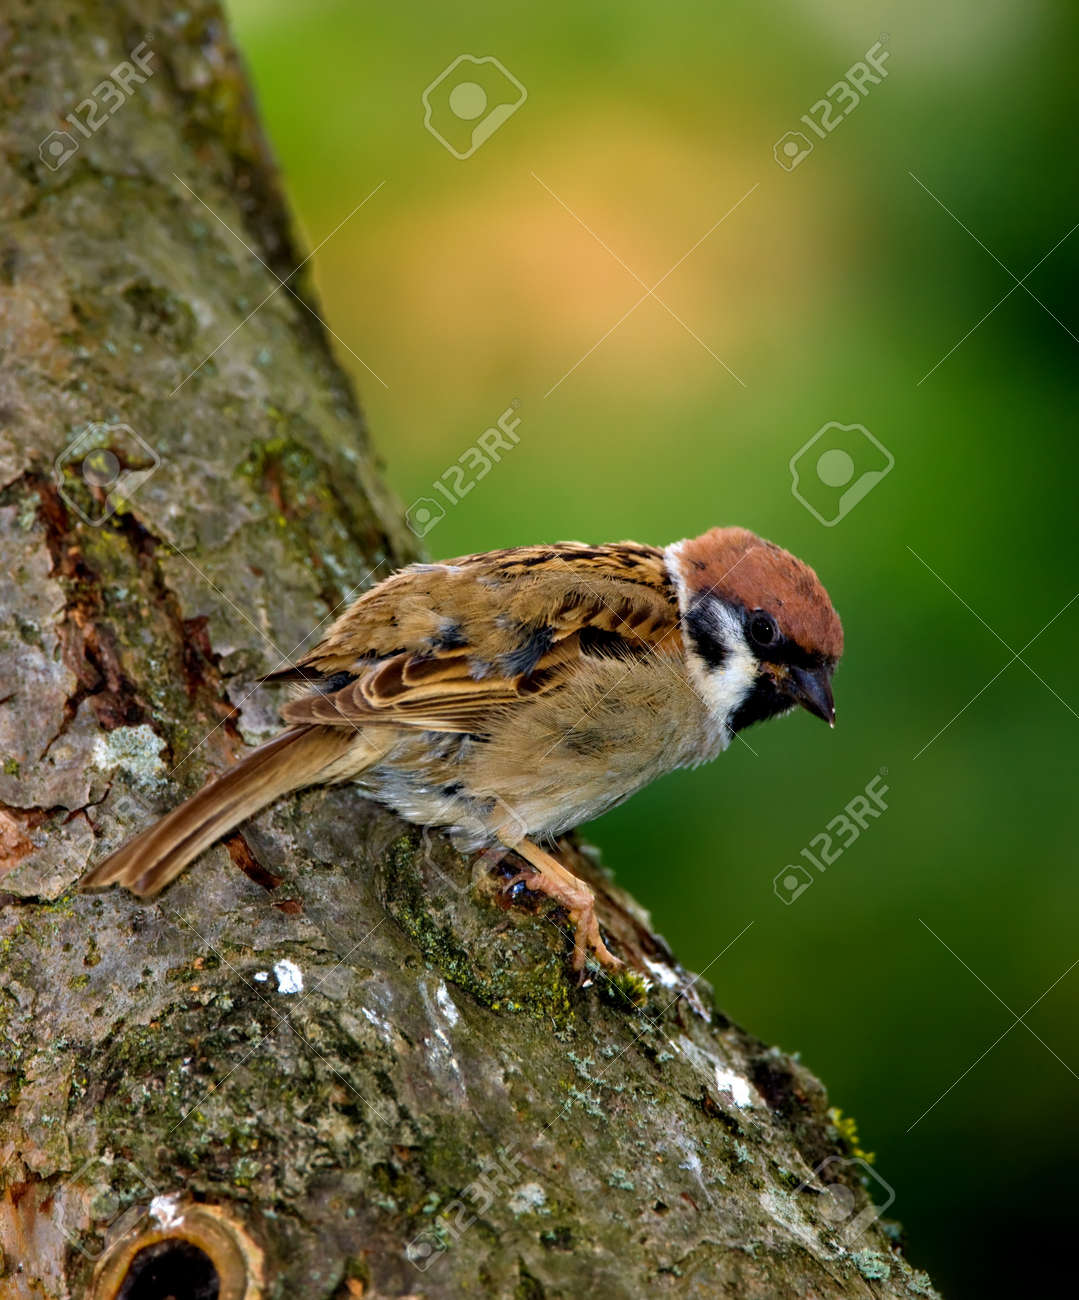 Beautiful Sparrow Late Afternoon Before Sunset Stock Photo Picture And Royalty Free Image Image 7422856